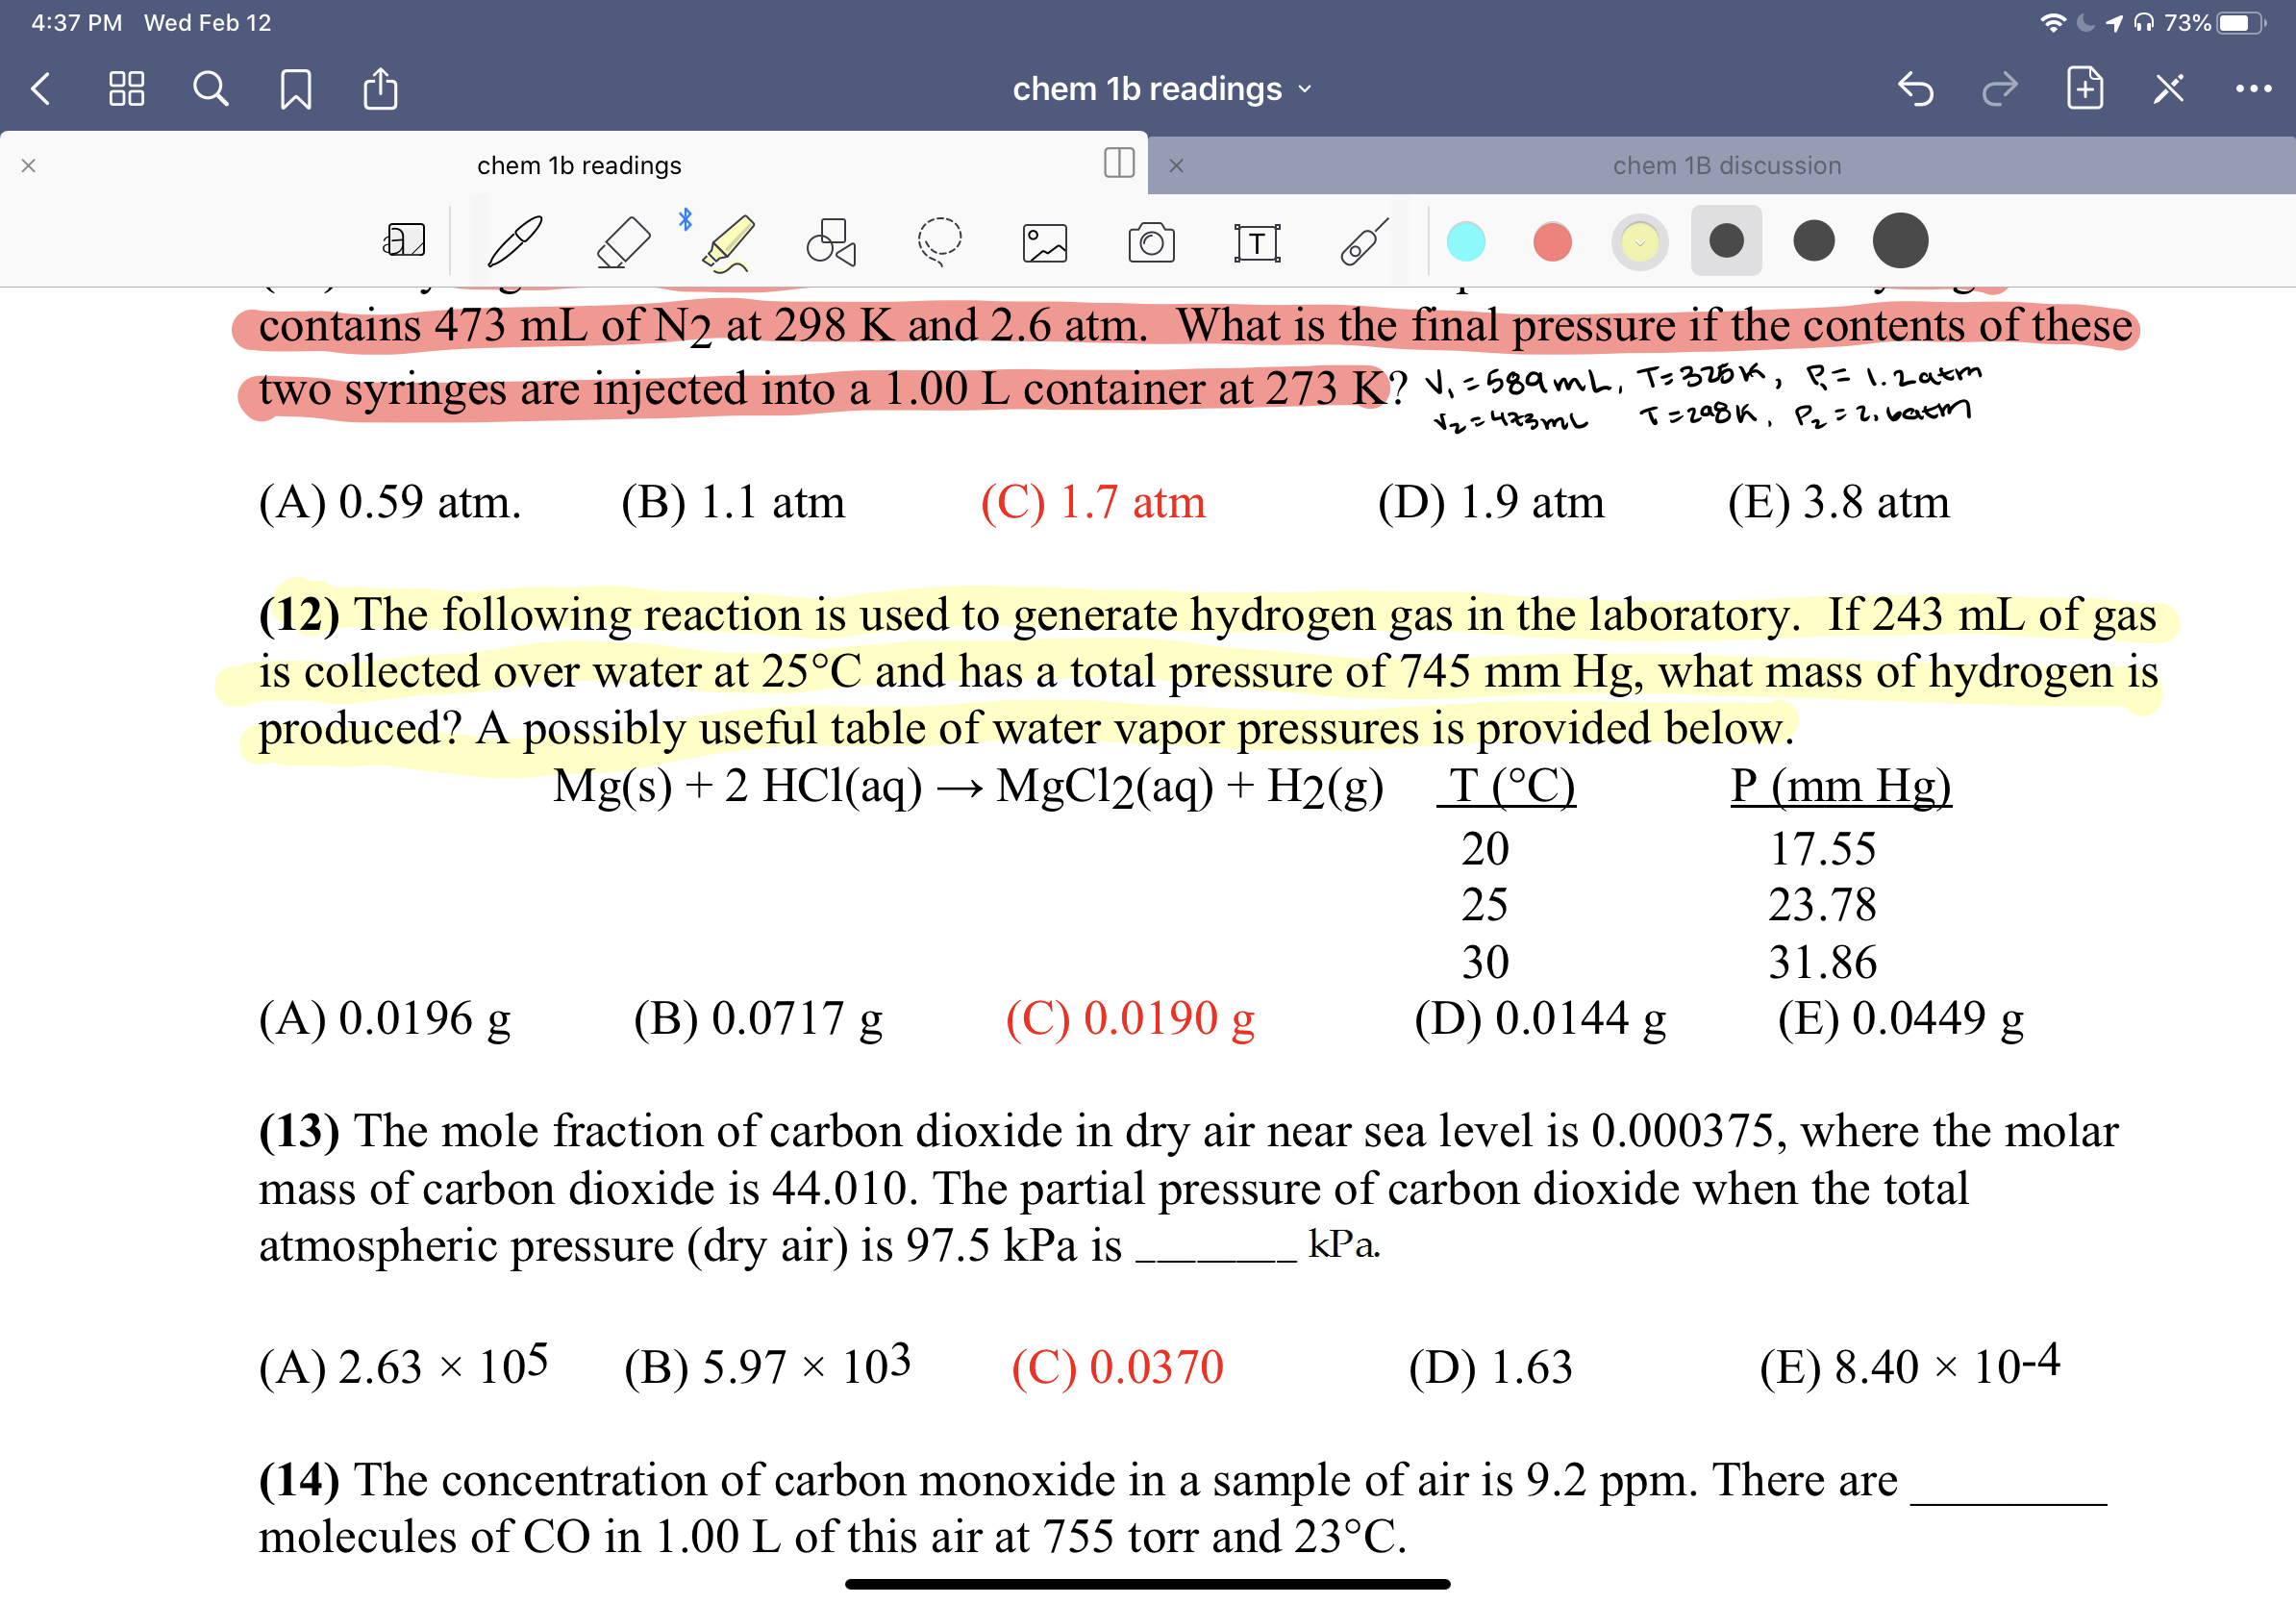 O 73% 4:37 PM Wed Feb 12 88 chem 1b readings chem 1b readings chem 1B discussion contains 473 mL of N2 at 298 K and 2.6 atm. What is the final pressure if the contents of these two syringes are injected into a 1.00 L container at 273 K? ♥. -589mL, Ts326k, R=1.2atm T=208K, P: 2. vatm Nレe473mし (A) 0.59 atm. (B) 1.1 atm (C) 1.7 atm (D) 1.9 atm (E) 3.8 atm (12) The following reaction is used to generate hydrogen gas in the laboratory. If 243 mL of gas is collected over water at 25°C and has a total pressure of 745 mm Hg, what mass of hydrogen is produced? A possibly useful table of water vapor pressures is provided below. P (mm Hg) Mg(s) + 2 HCl(aq) → MgCl2(aq) + H2(g) T(°C) 20 17.55 25 23.78 30 31.86 (C) 0.0190 g (A) 0.0196 g (B) 0.0717 g (D) 0.0144 g (E) 0.0449 g (13) The mole fraction of carbon dioxide in dry air near sea level is 0.000375, where the molar mass of carbon dioxide is 44.010. The partial pressure of carbon dioxide when the total atmospheric pressure (dry air) is 97.5 kPa is kPa. (C) 0.0370 (A) 2.63 × 105 (В) 5.97 х 103 (D) 1.63 (E) 8.40 × 10-4 (14) The concentration of carbon monoxide in a sample of air is 9.2 ppm. There are molecules of CO in 1.00 L of this air at 755 torr and 23°C.